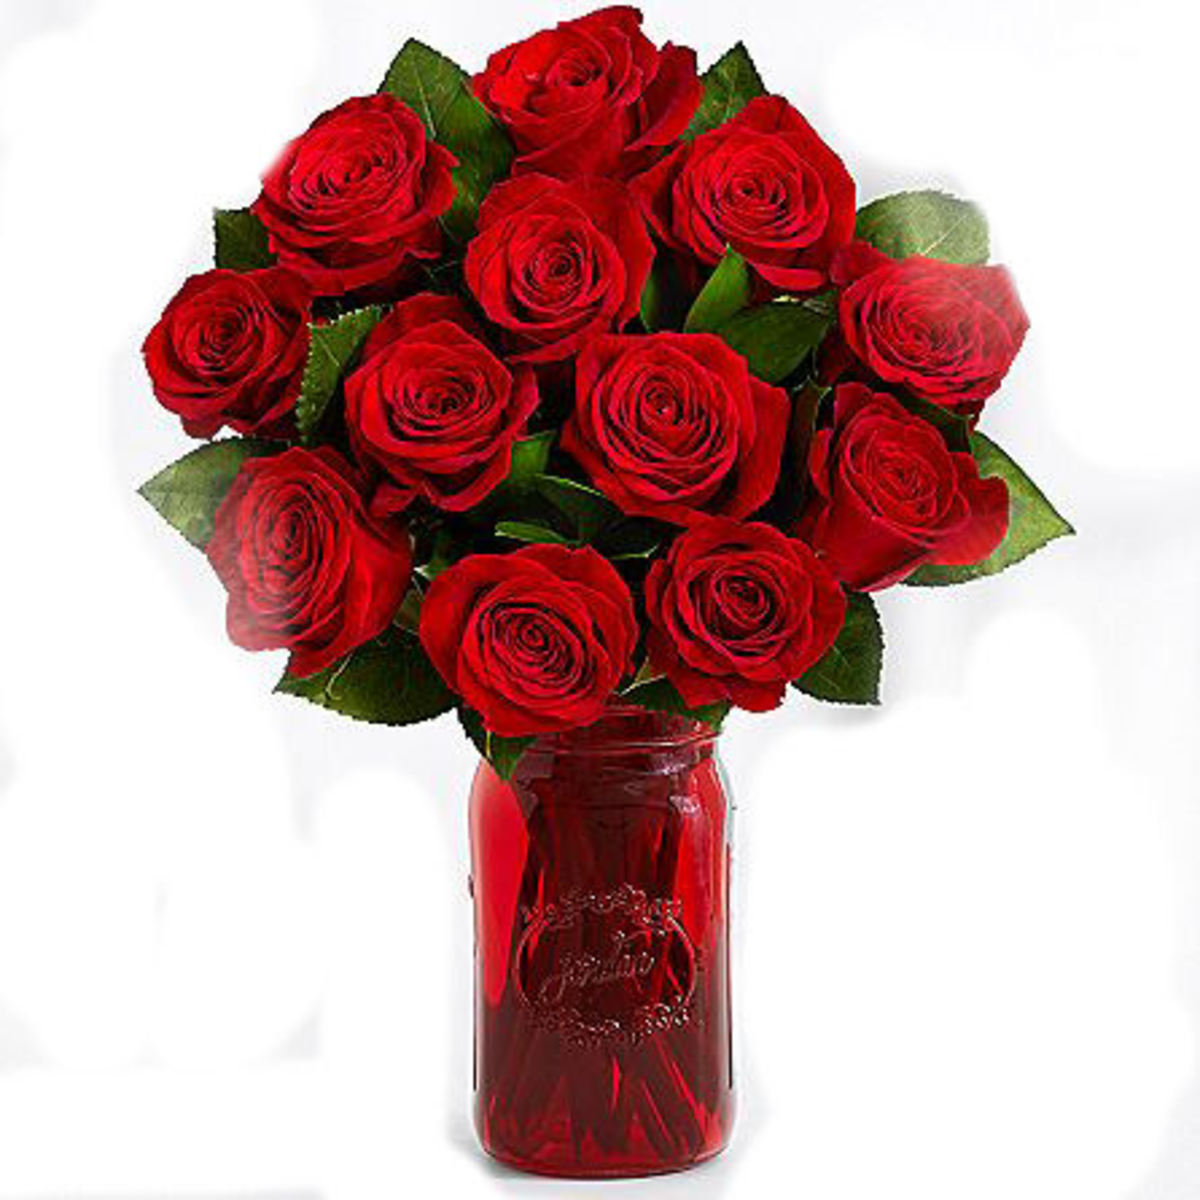 The True Cost of Valentine's Day Roses & How to Get Fresh Ones